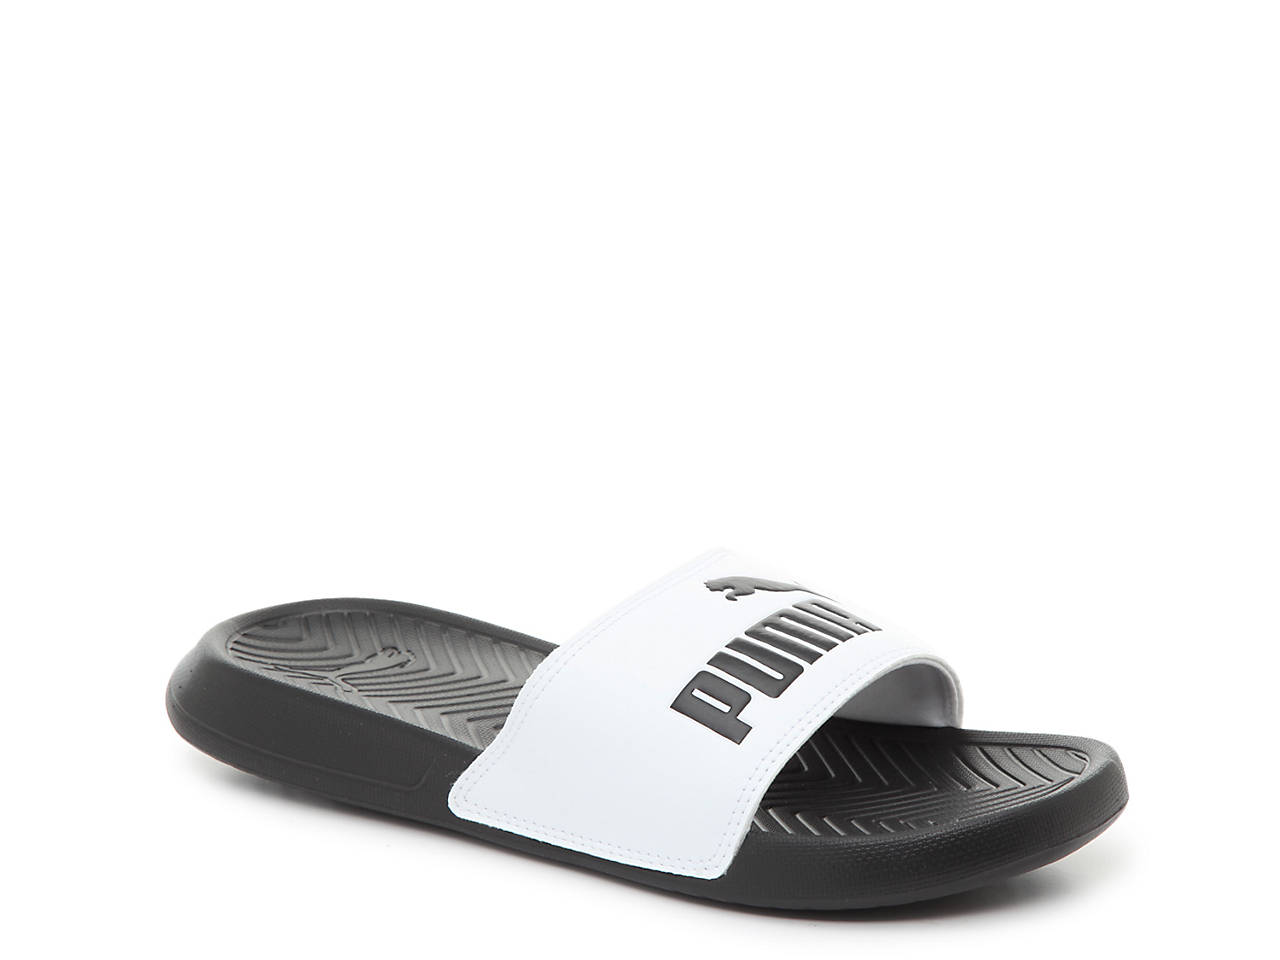 034936372b0e Puma Popcat Slide Sandal - Women s Women s Shoes